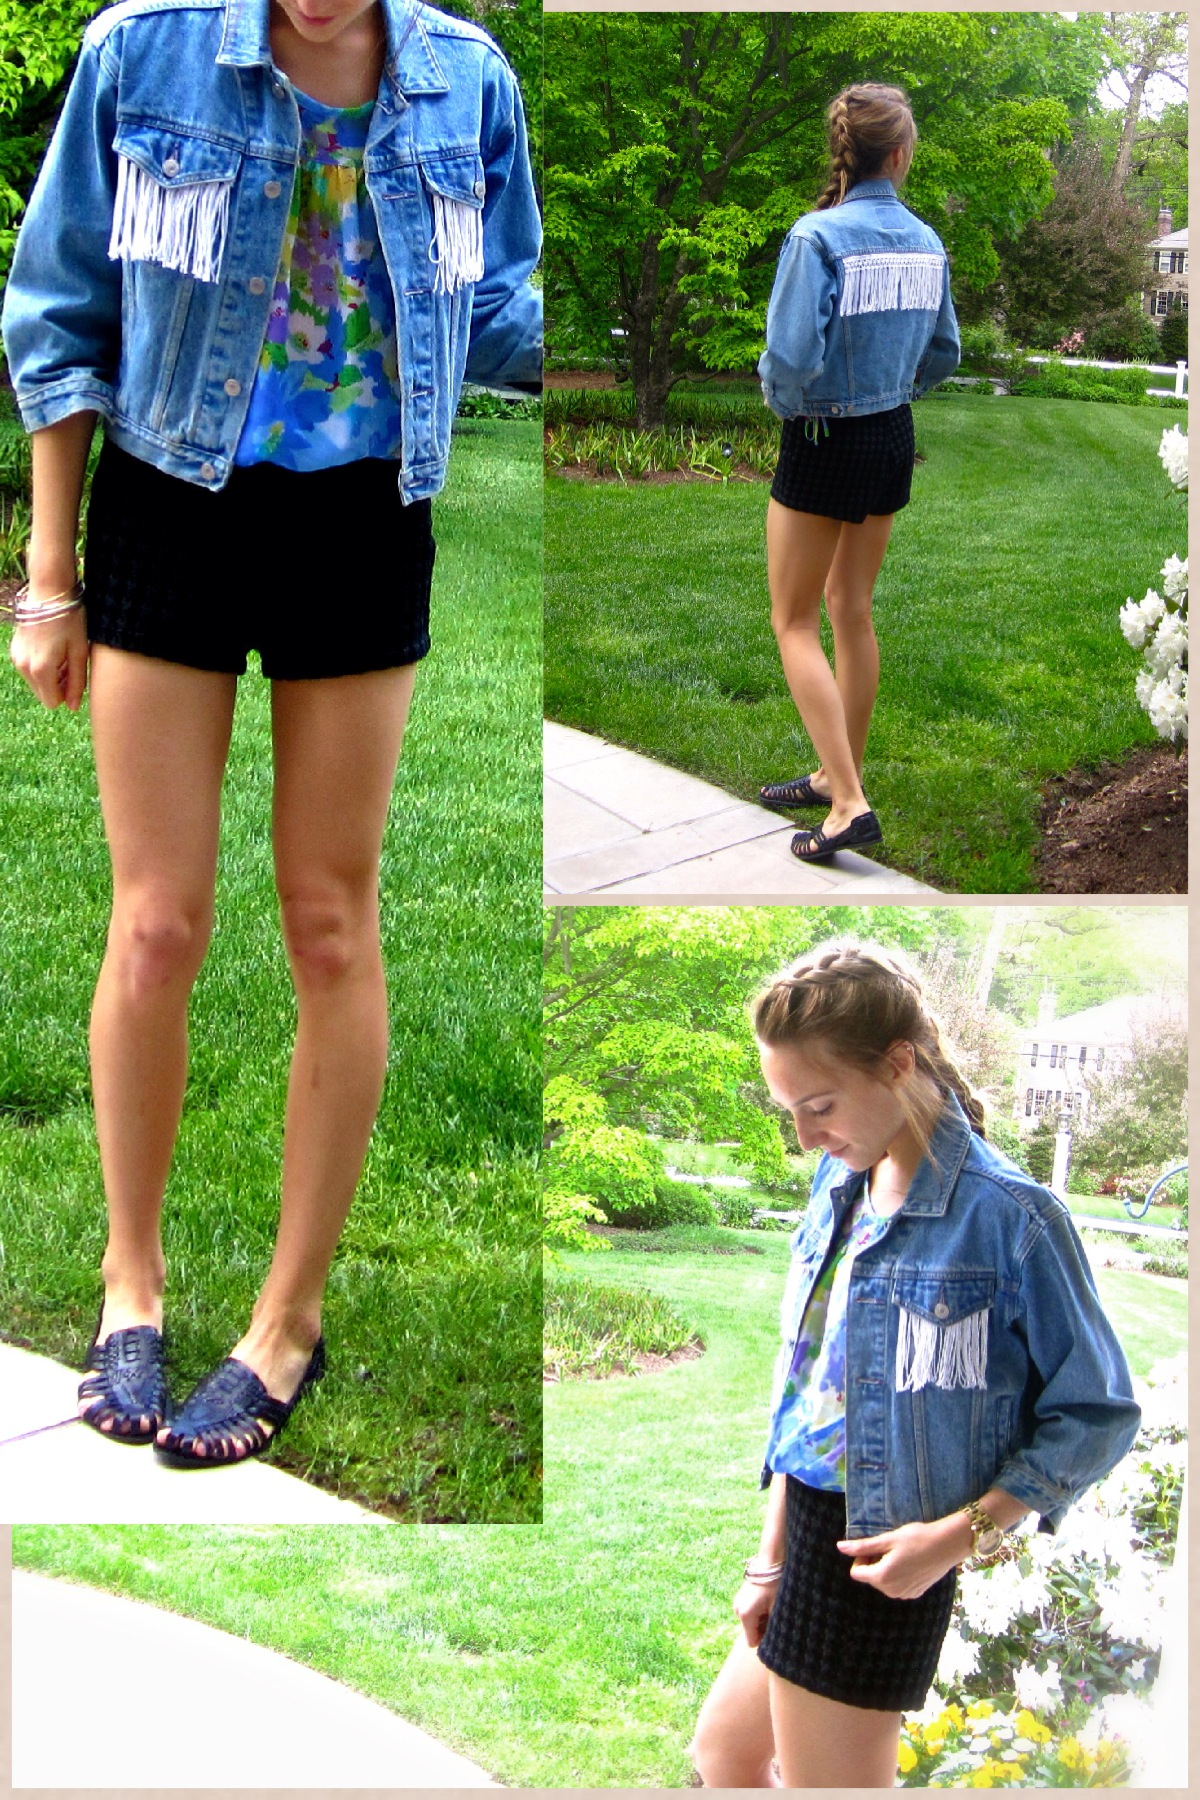 OOTDIY – Denim & Fringe